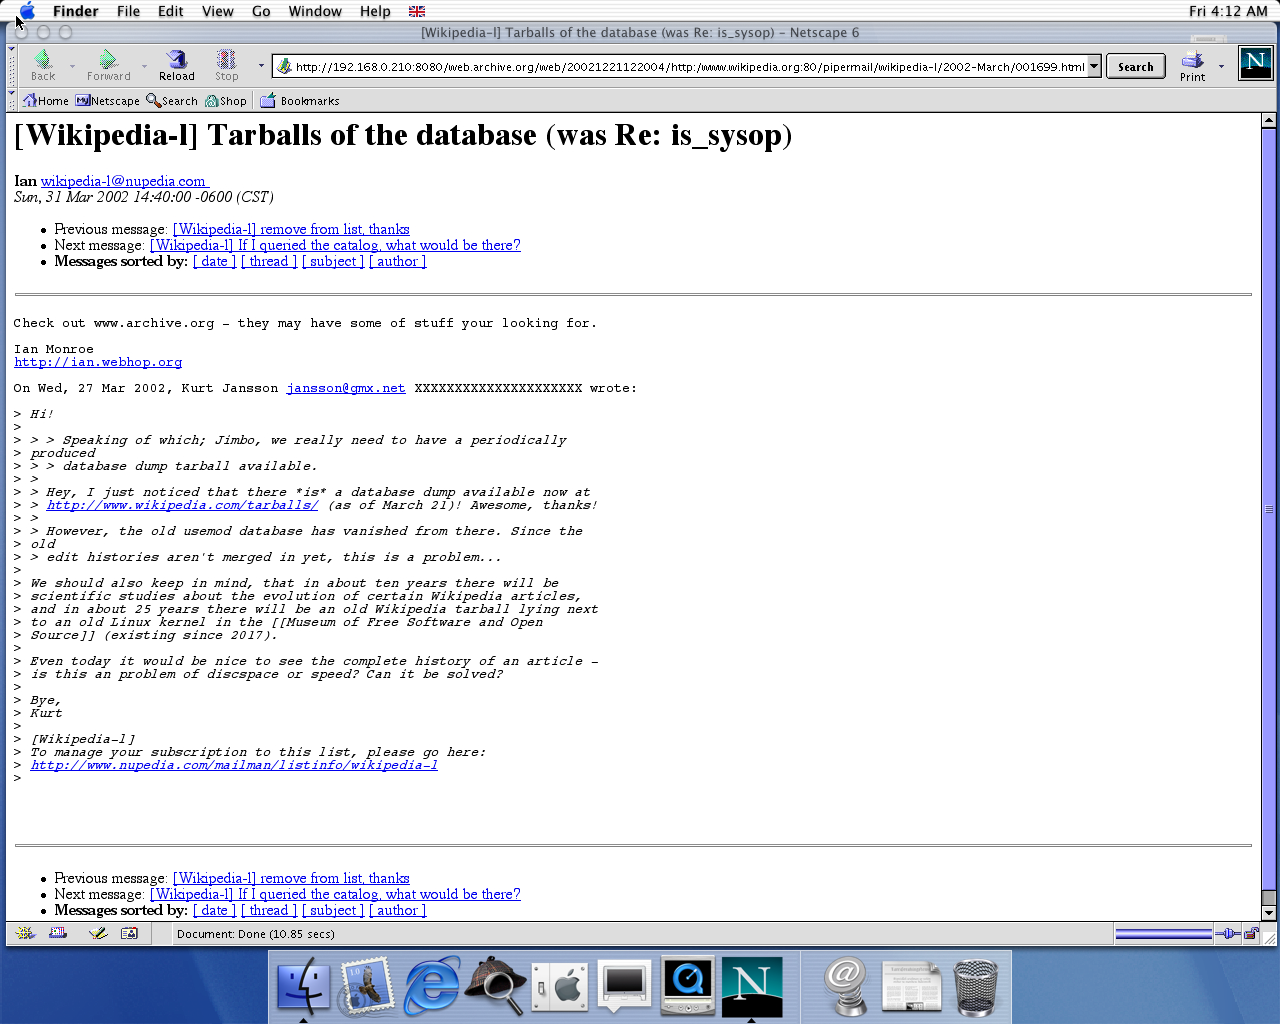 OS X 10.0 PPC with Netscape 6.1 displaying a page from Wikipedia.org archived at December 21, 2002 at 12:20:04